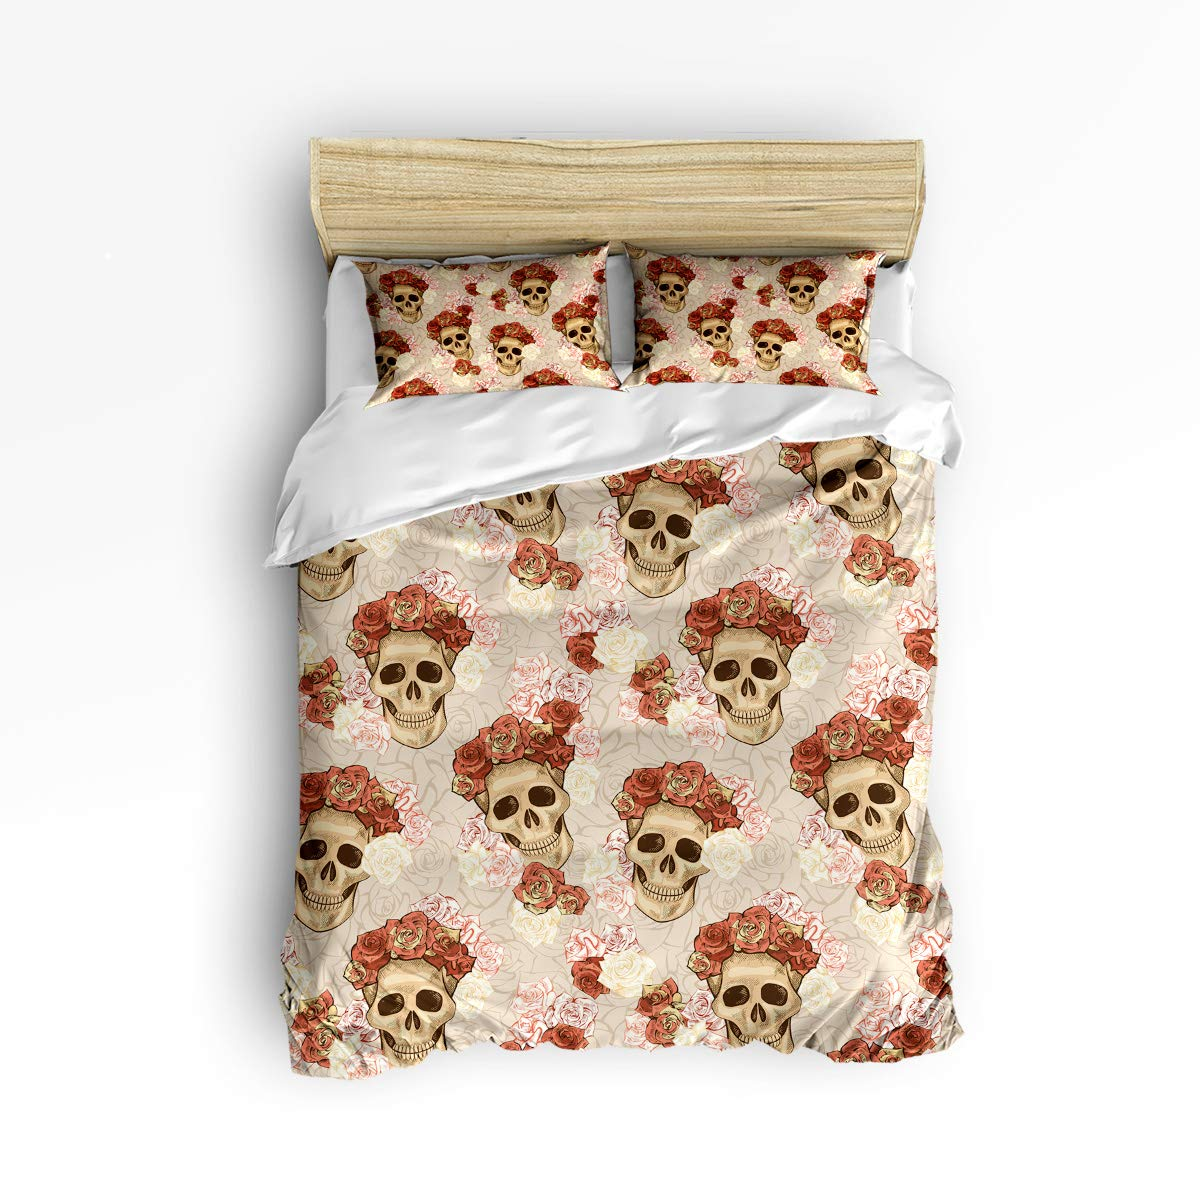 YEHO Art Gallery King Size Luxury 3 Piece Duvet Cover Sets for Boys Girls,Horror Halloween Pumpkin Crow Tombstone Design Adult Bedding Sets,Include 1 Comforter Cover with 2 Pillow Cases